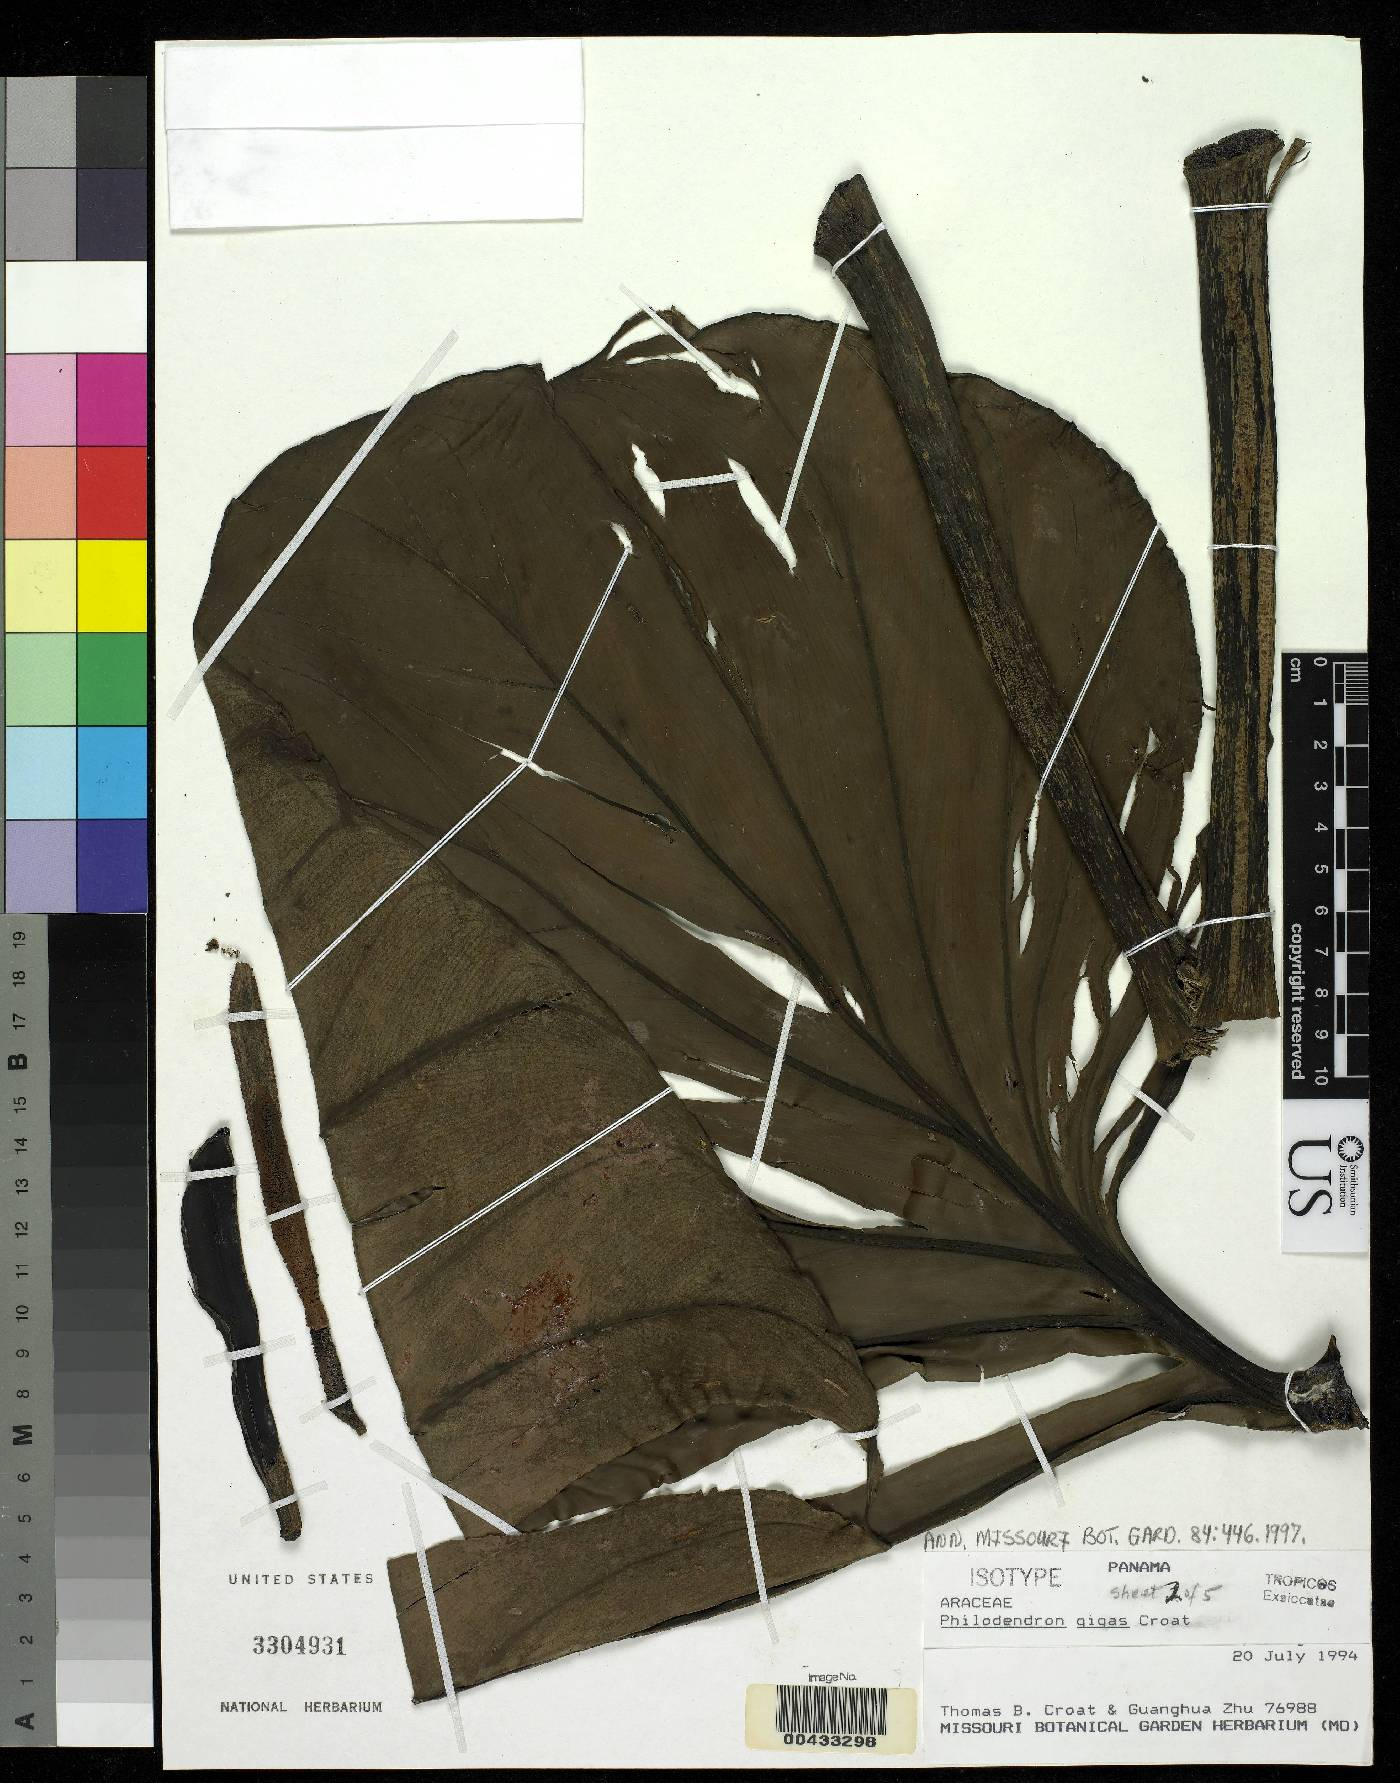 Philodendron gigas image